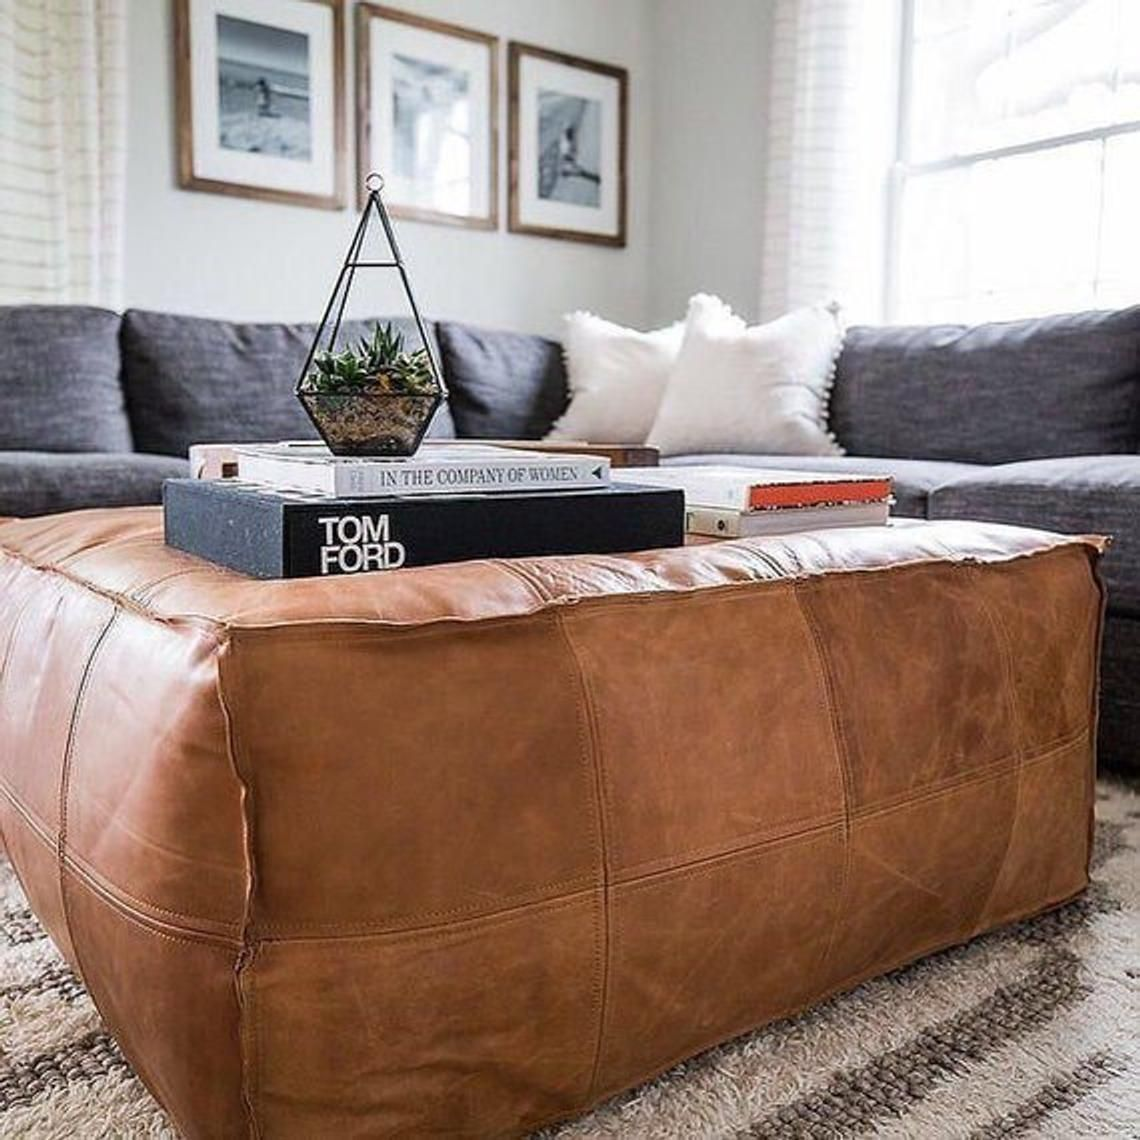 Superb Ottoman Square Poufs Moroccan Leather Light Tan Handmade Squirreltailoven Fun Painted Chair Ideas Images Squirreltailovenorg